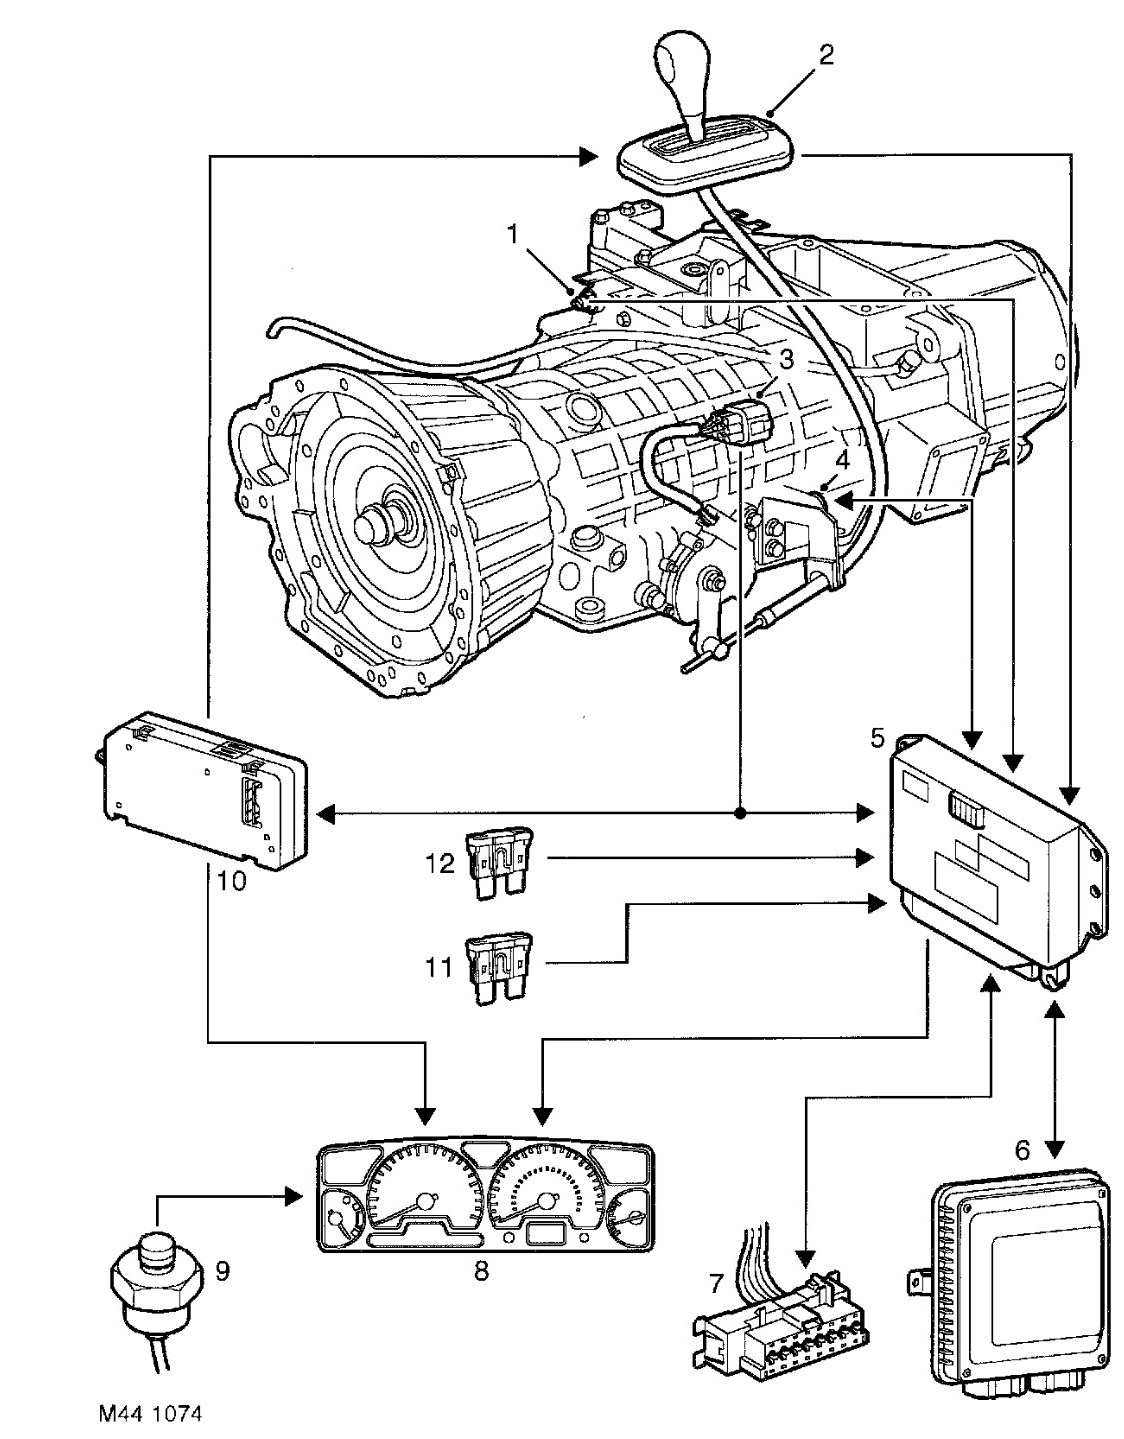 2002 jeep wrangler trailer wiring harness | free download wiring